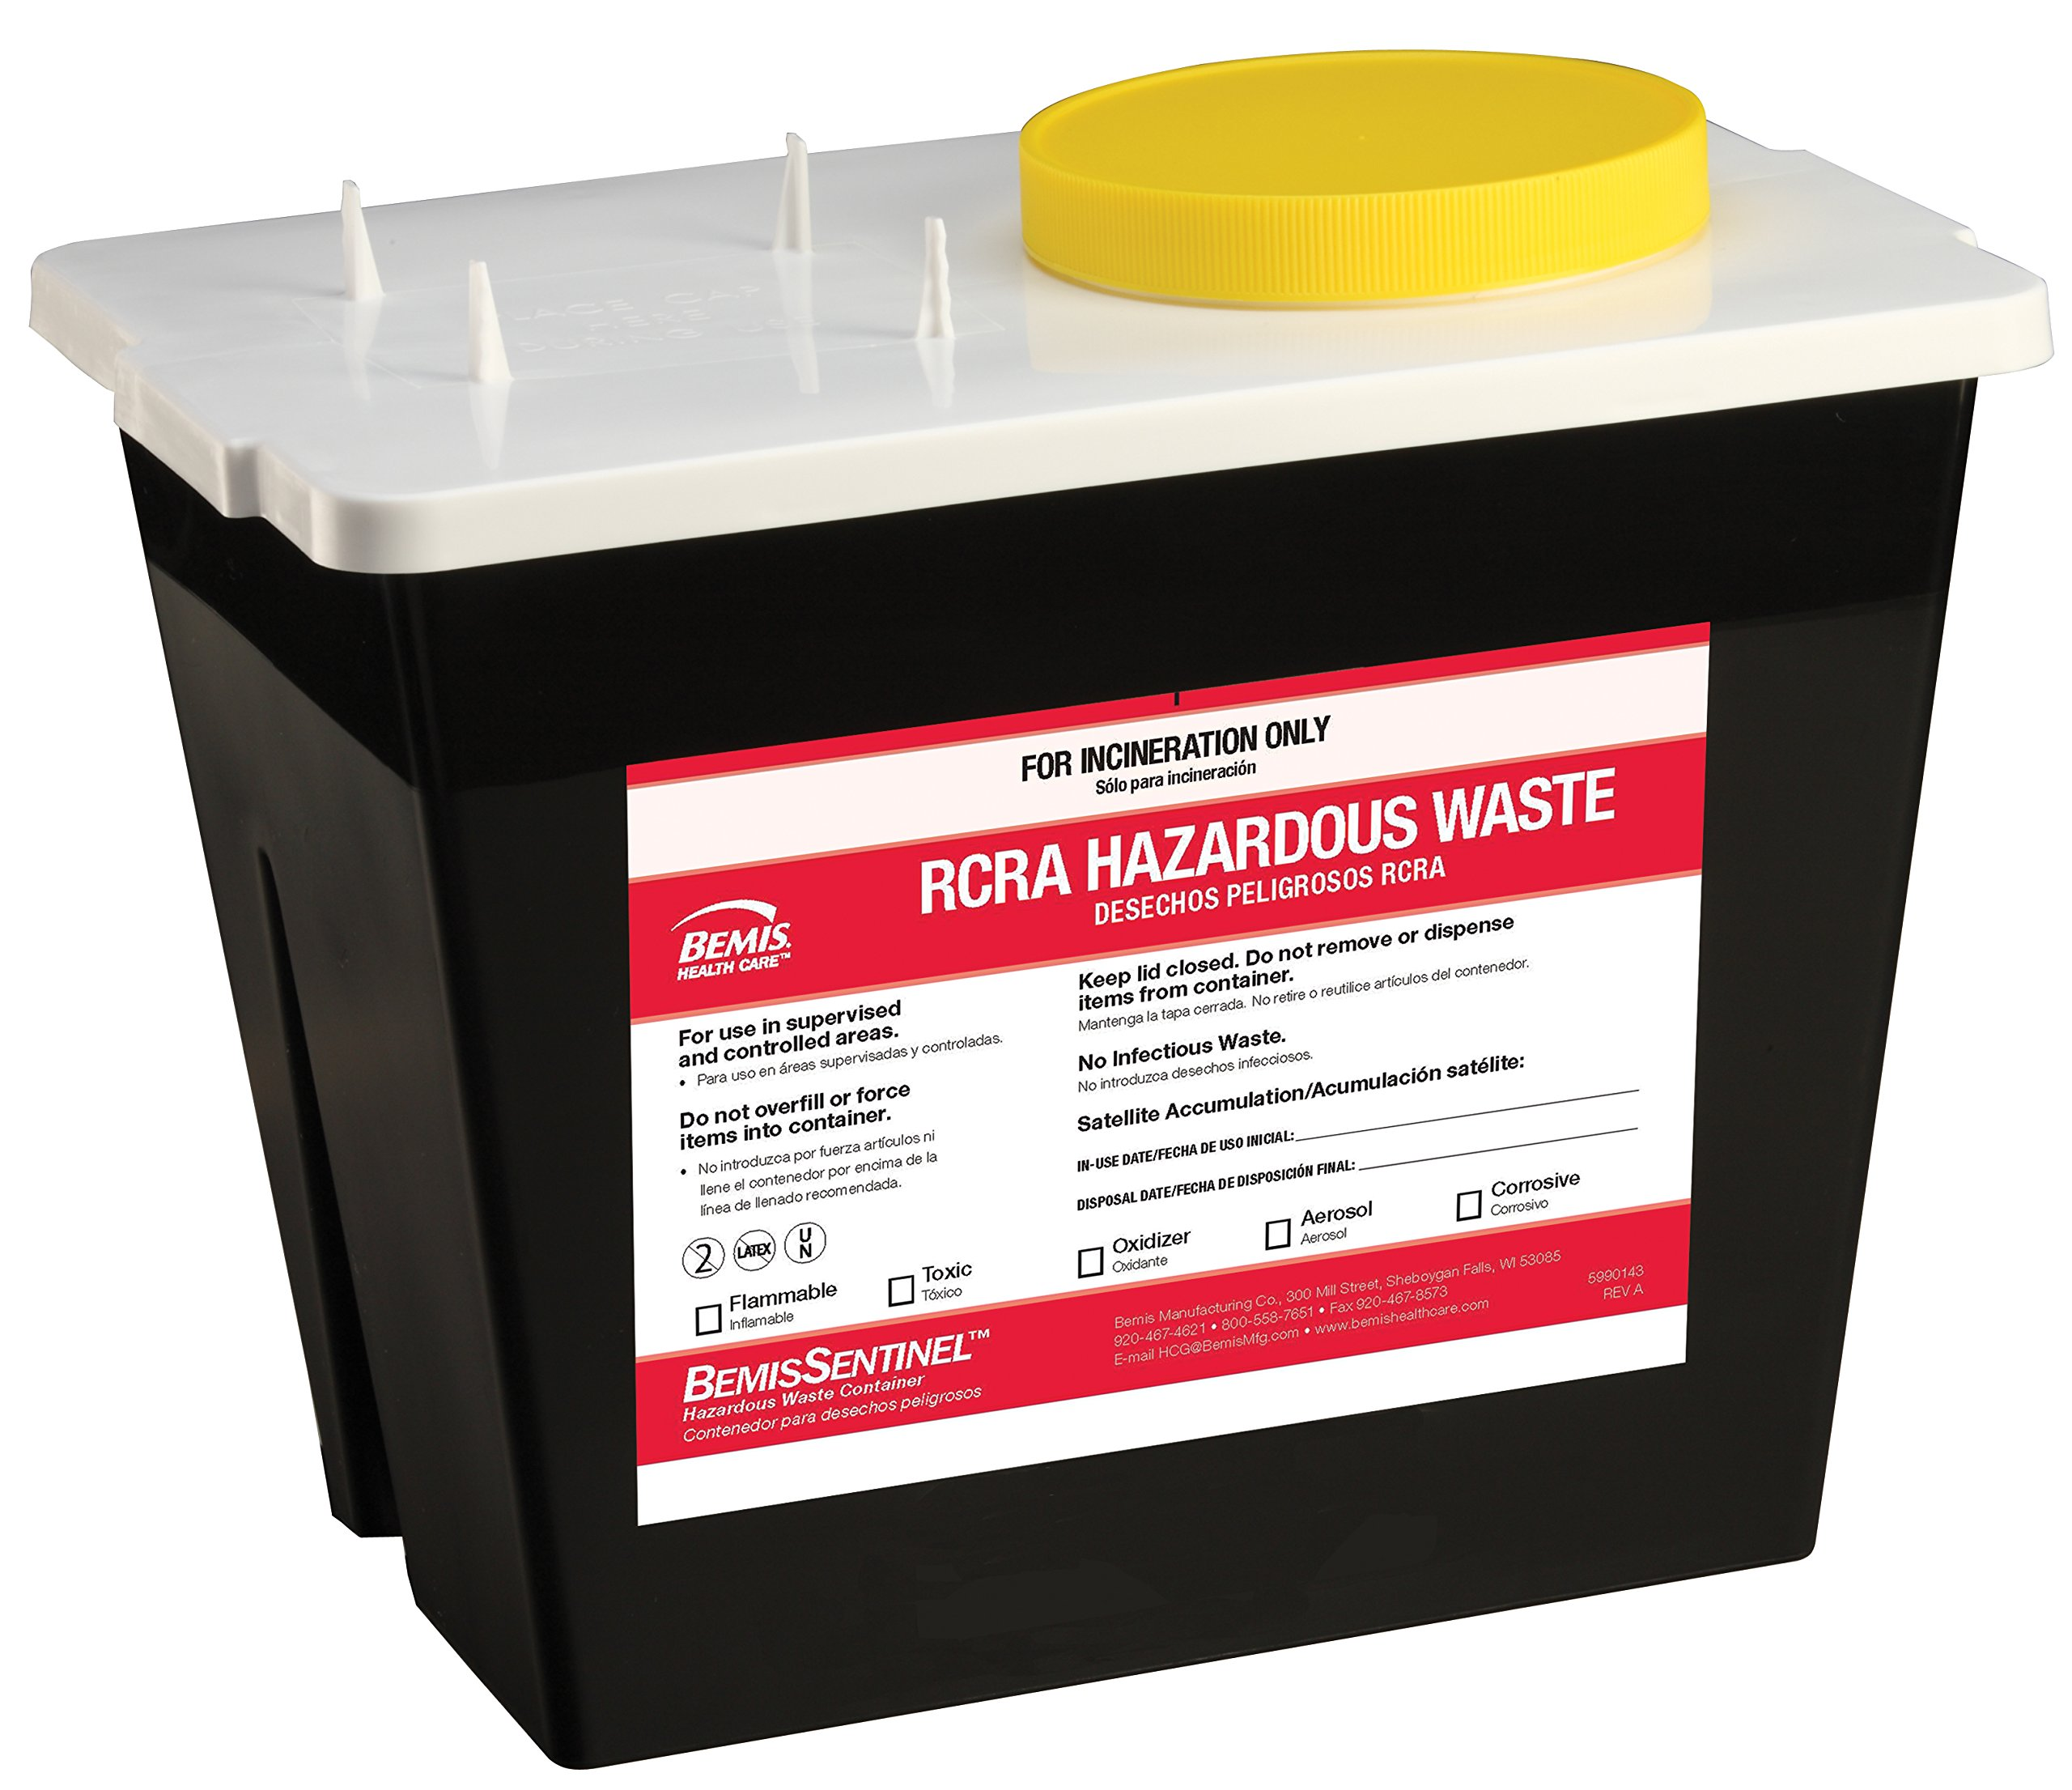 Bemis Healthcare 5002070-5 2 gal RCRA Hazardous Chemical Waste Container, Black (Pack of 5)